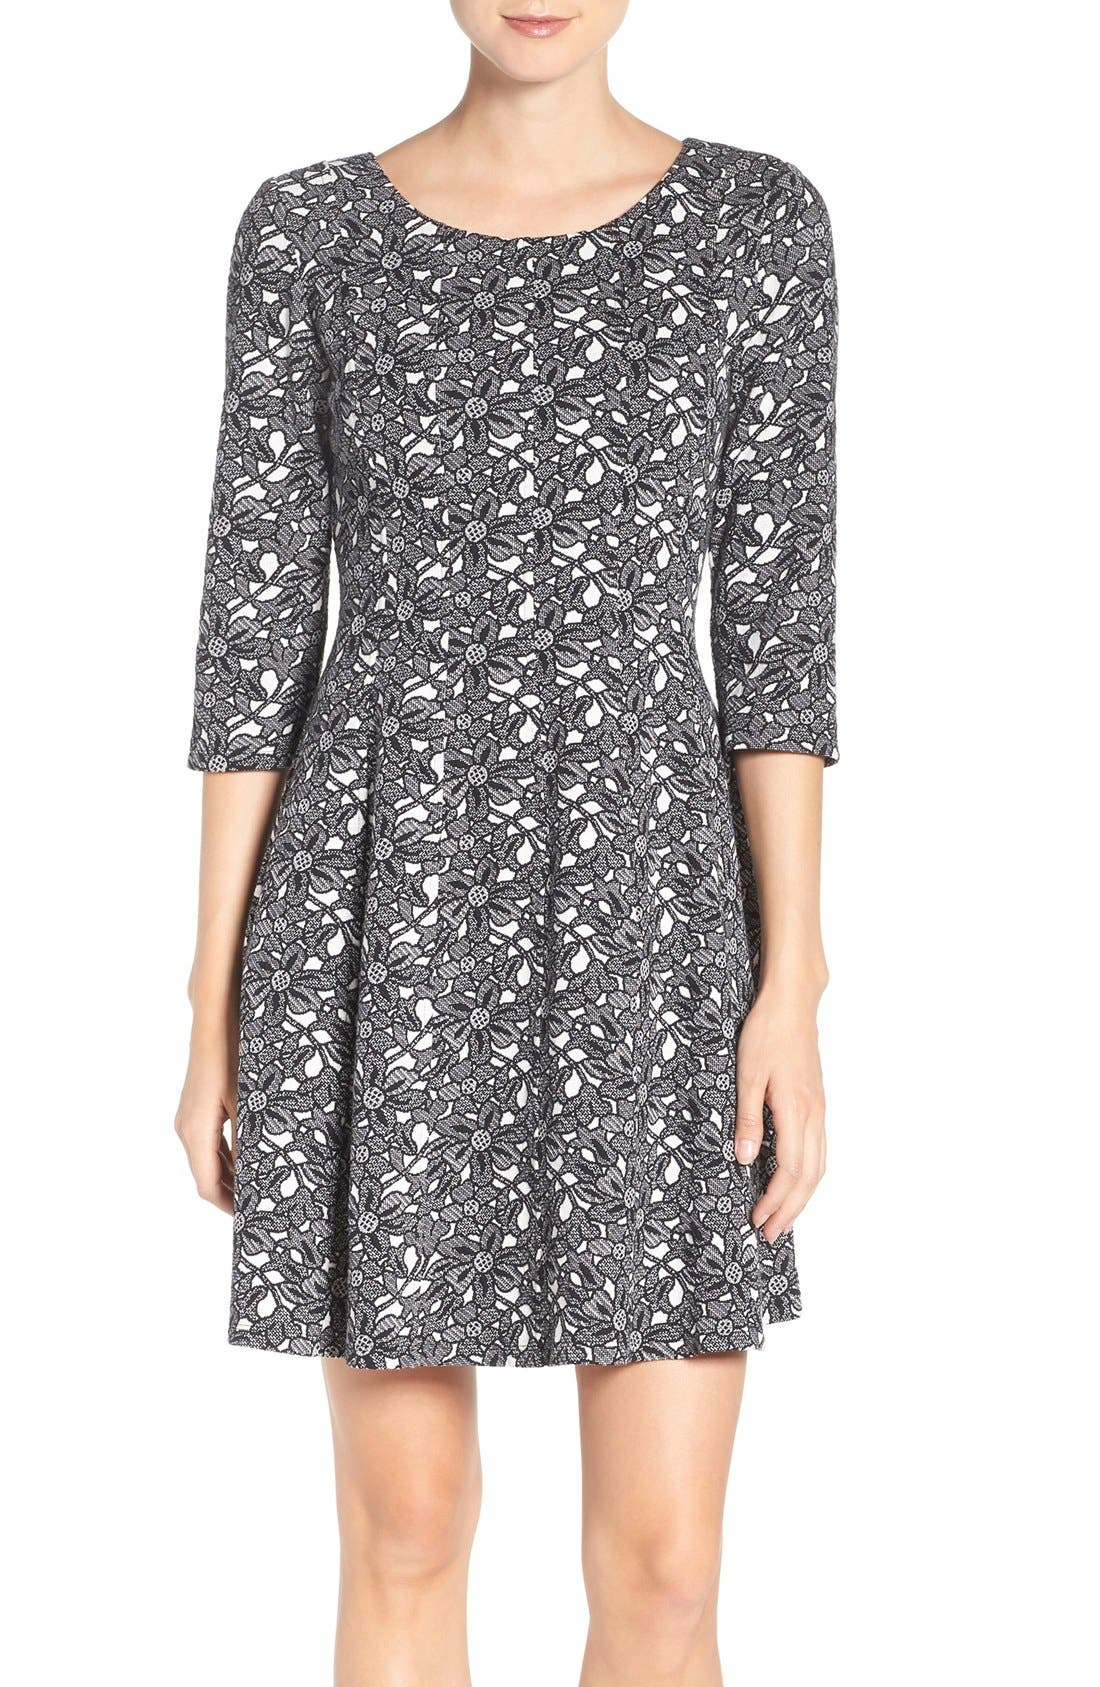 TAYLOR DRESSES Floral Jacquard Fit & Flare Dress